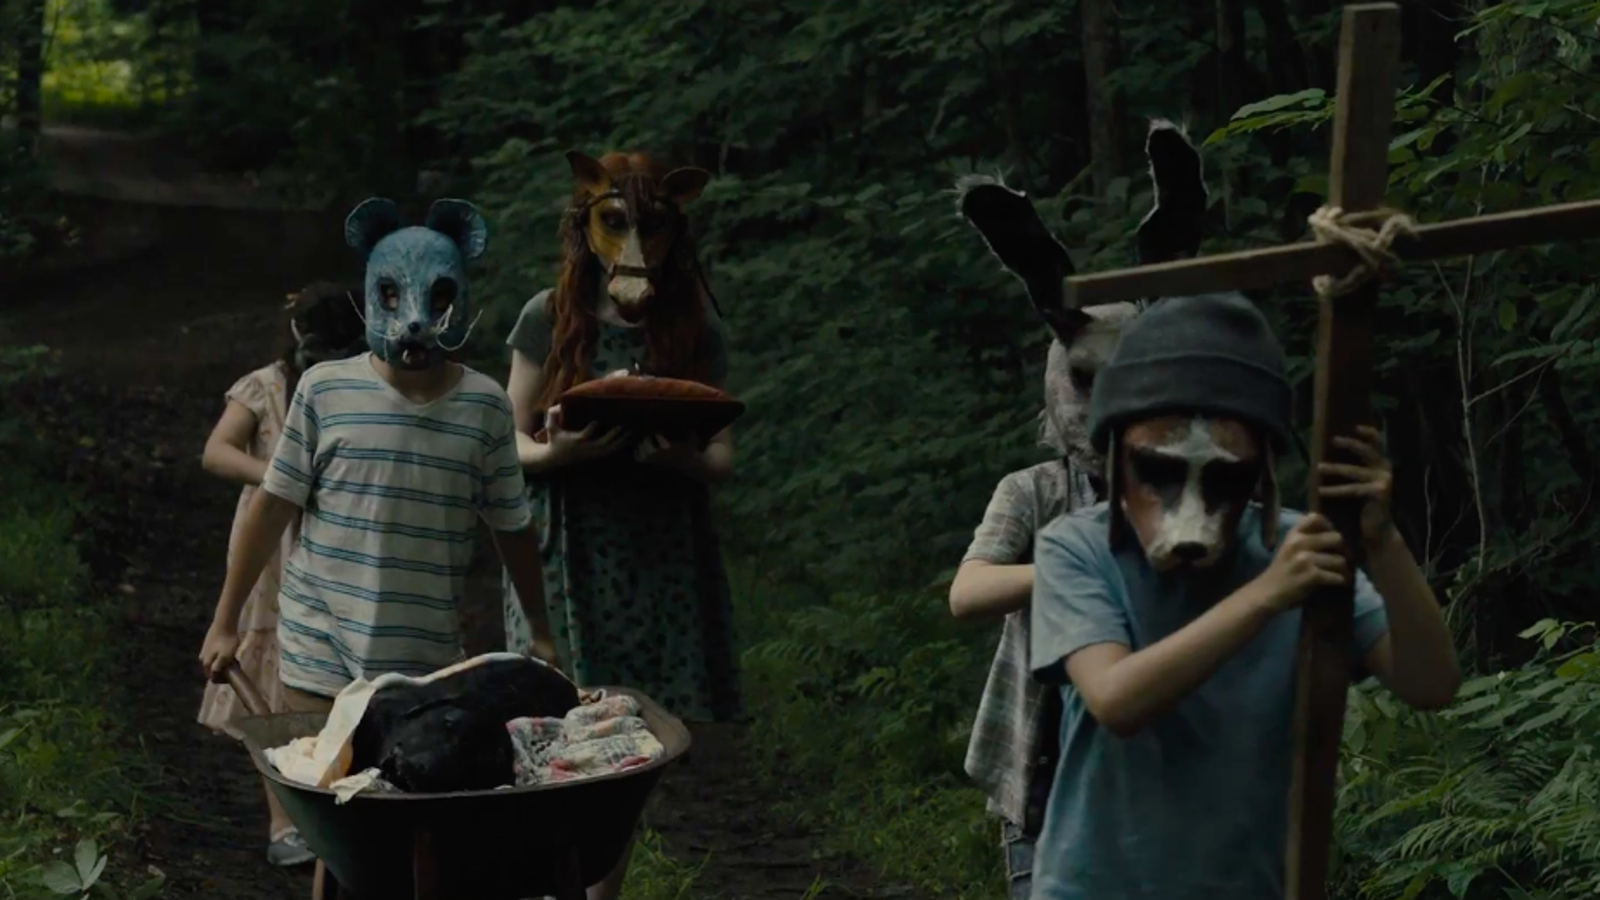 The First Disturbing Pet Sematary Trailer Is Here to Remind You to Leave Dead Things Alone